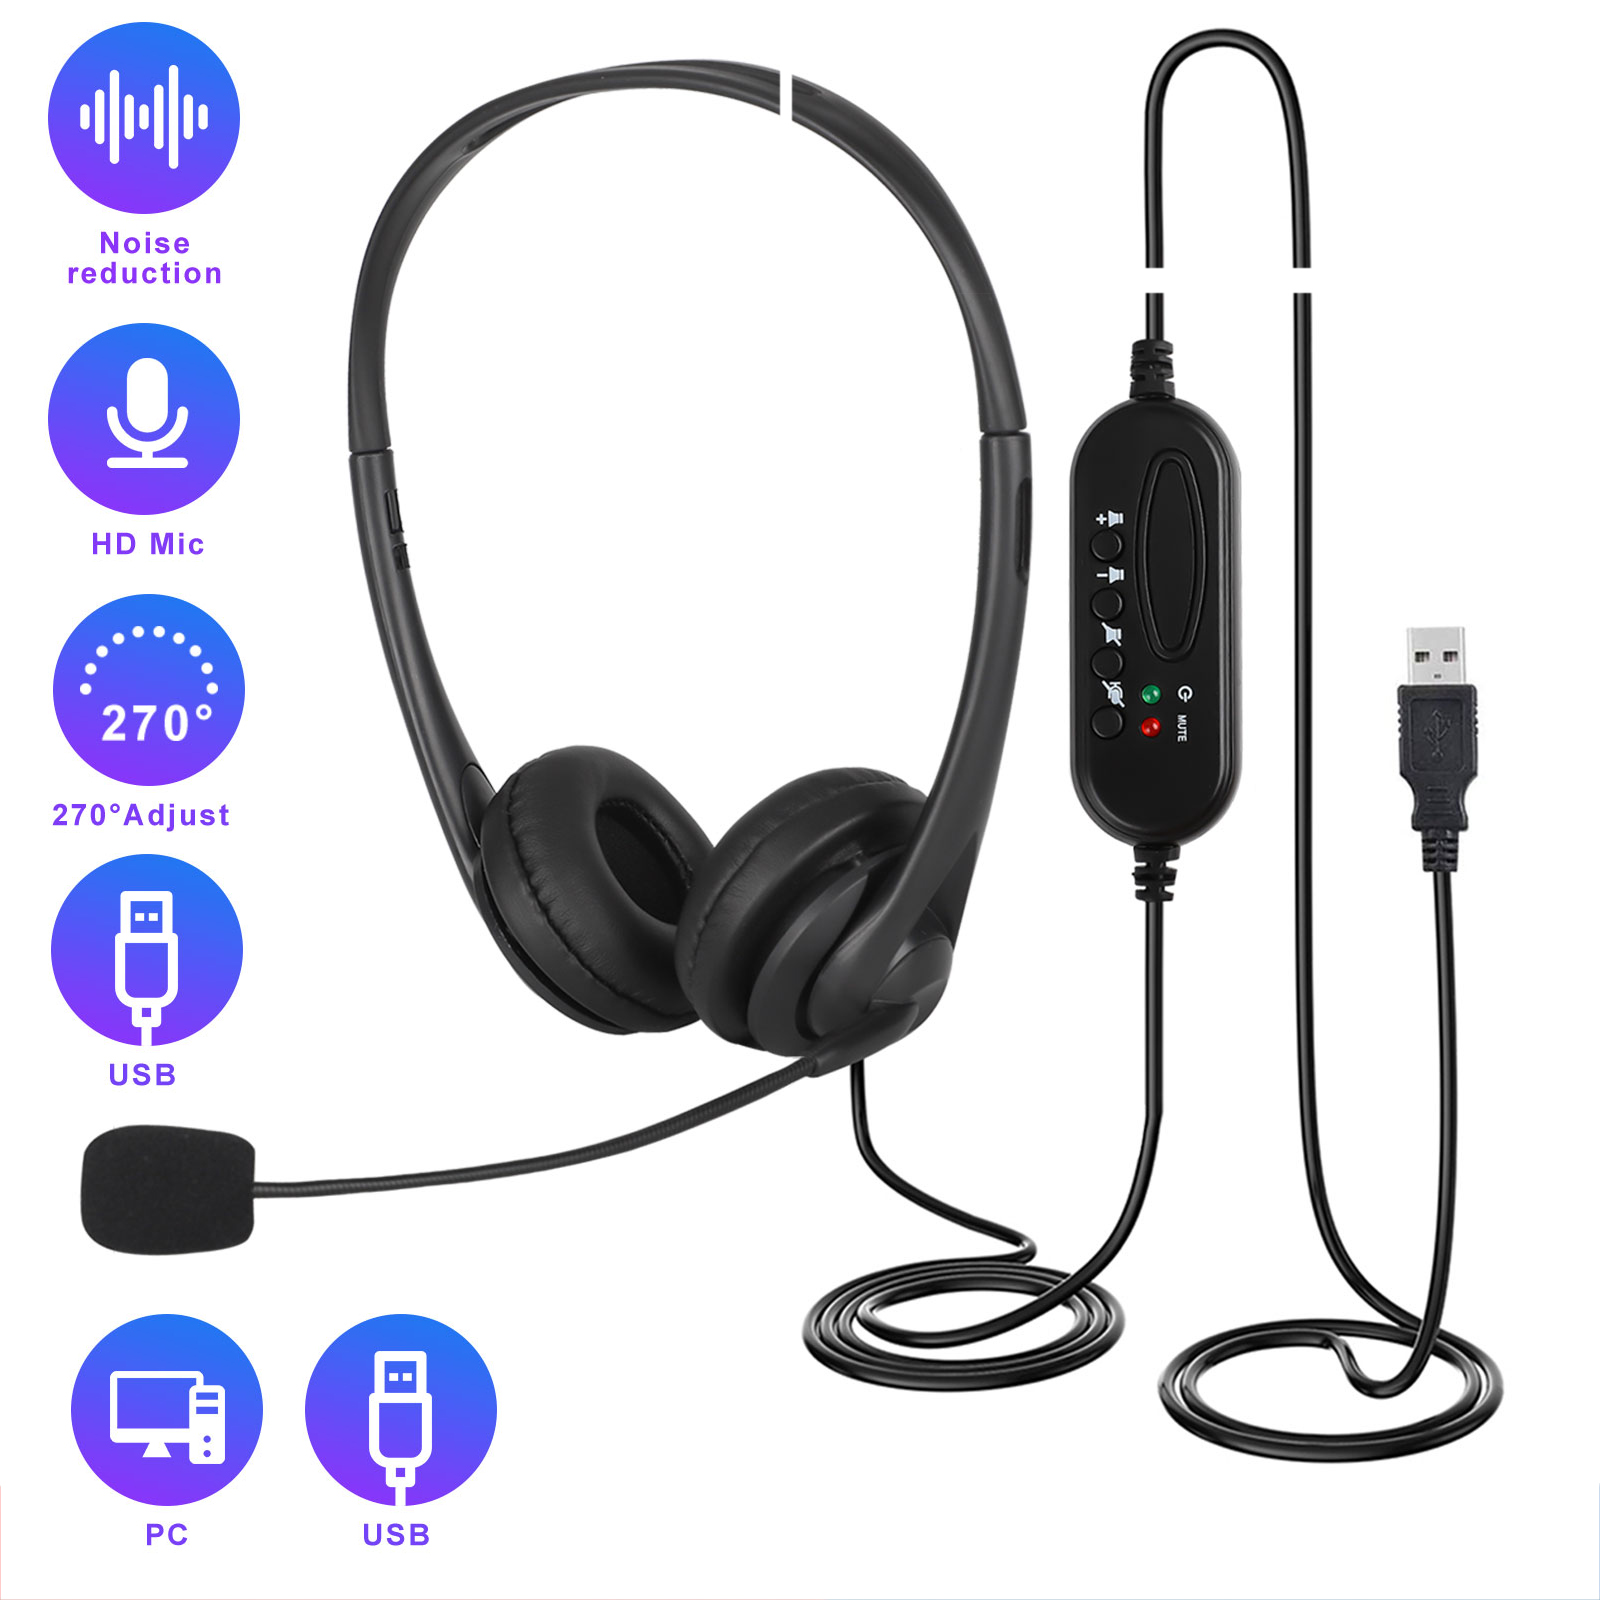 USB Headset with Microphone Noise Cancelling /& Audio Controls USB Wired PC Headphone Super Light /& Comfort for Business Conference Calls Soft phone Conversation Online Teaching Skype etc